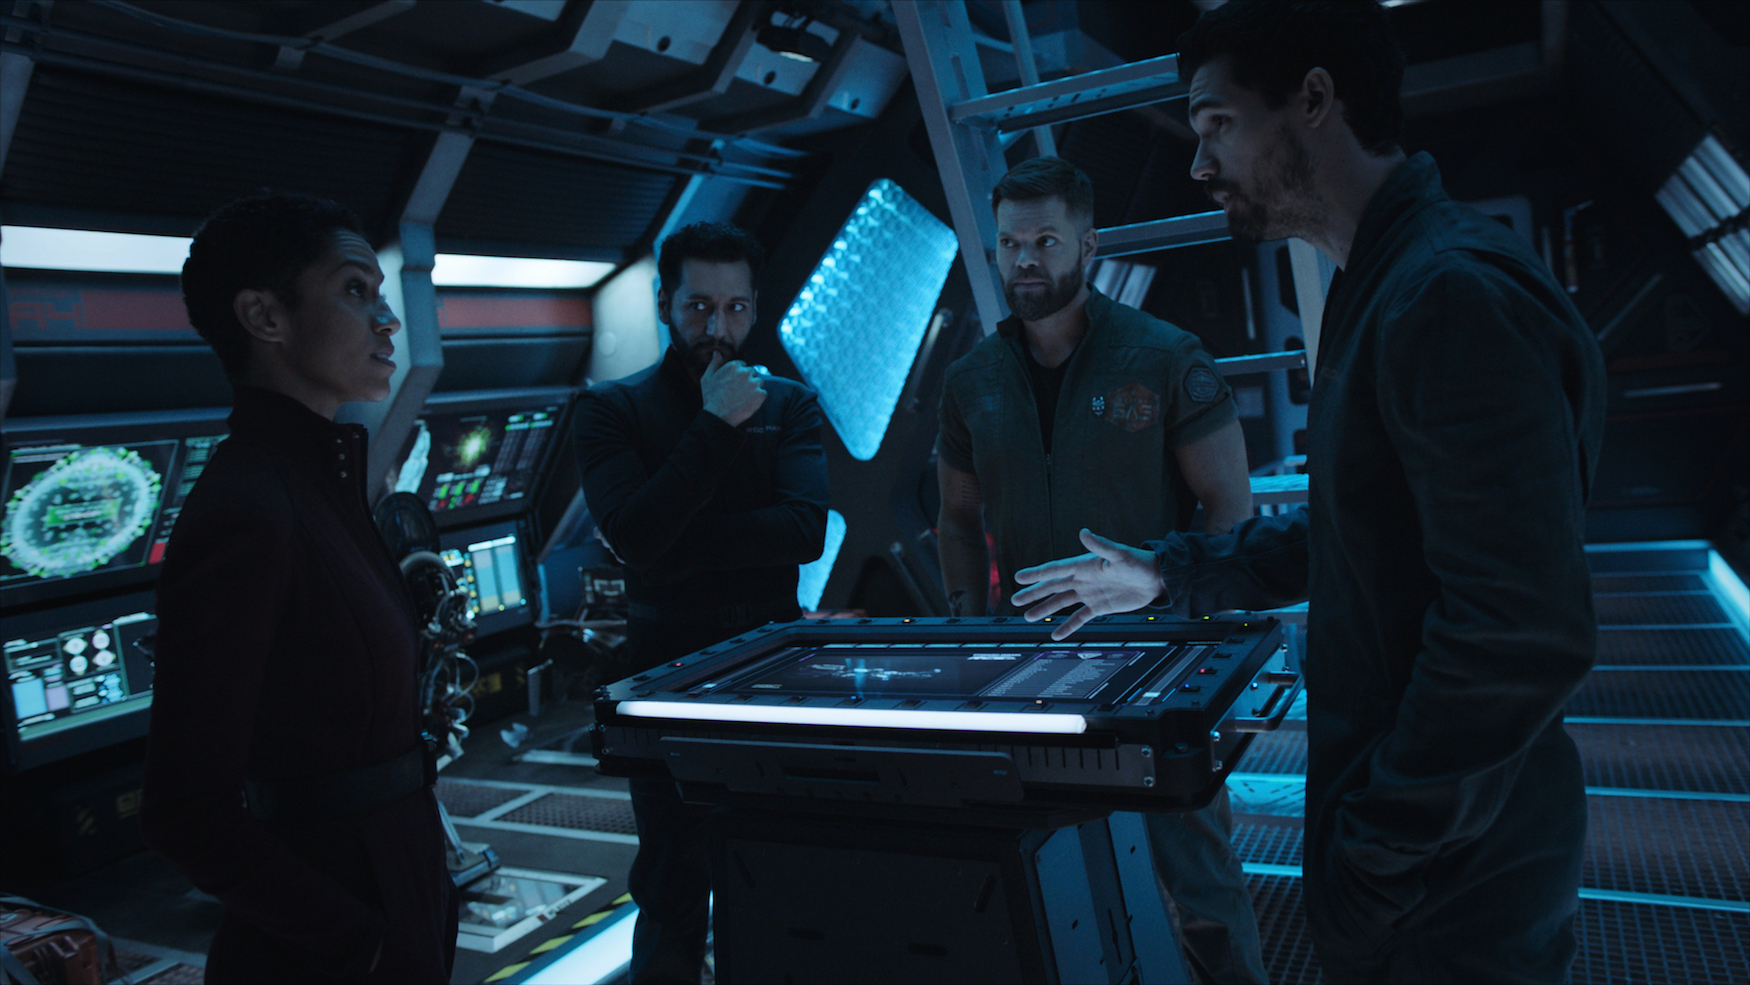 'The Expanse' Review: TV's Premiere Space Story Gets a Thrilling New Chapter in Season 4